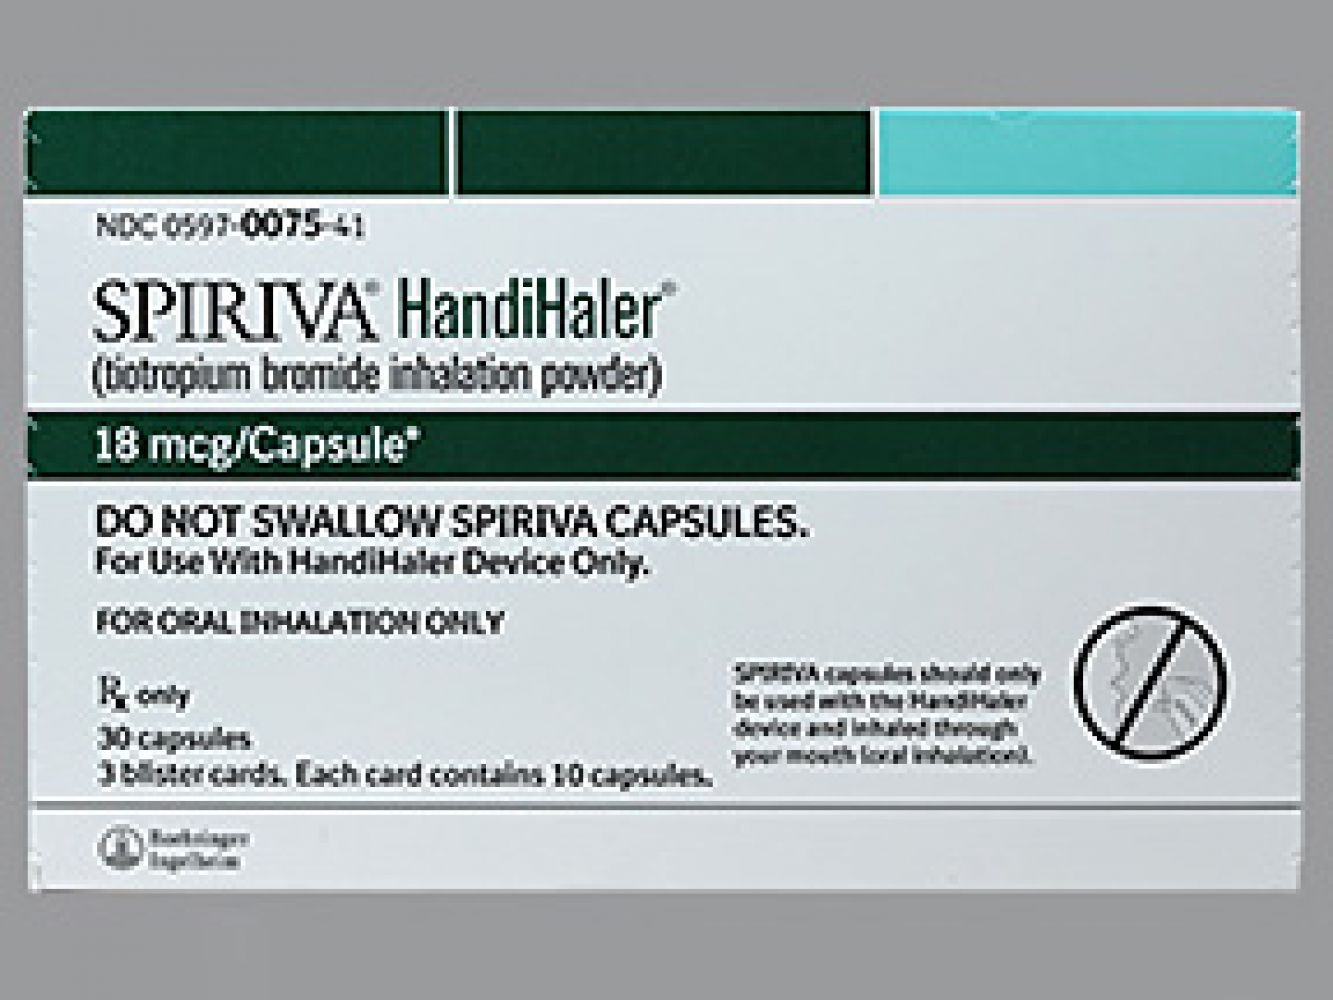 Spiriva 18 Mcg Cp-Handihaler - S - All - Cheap Prescription Prices - Free Printable Spiriva Coupons